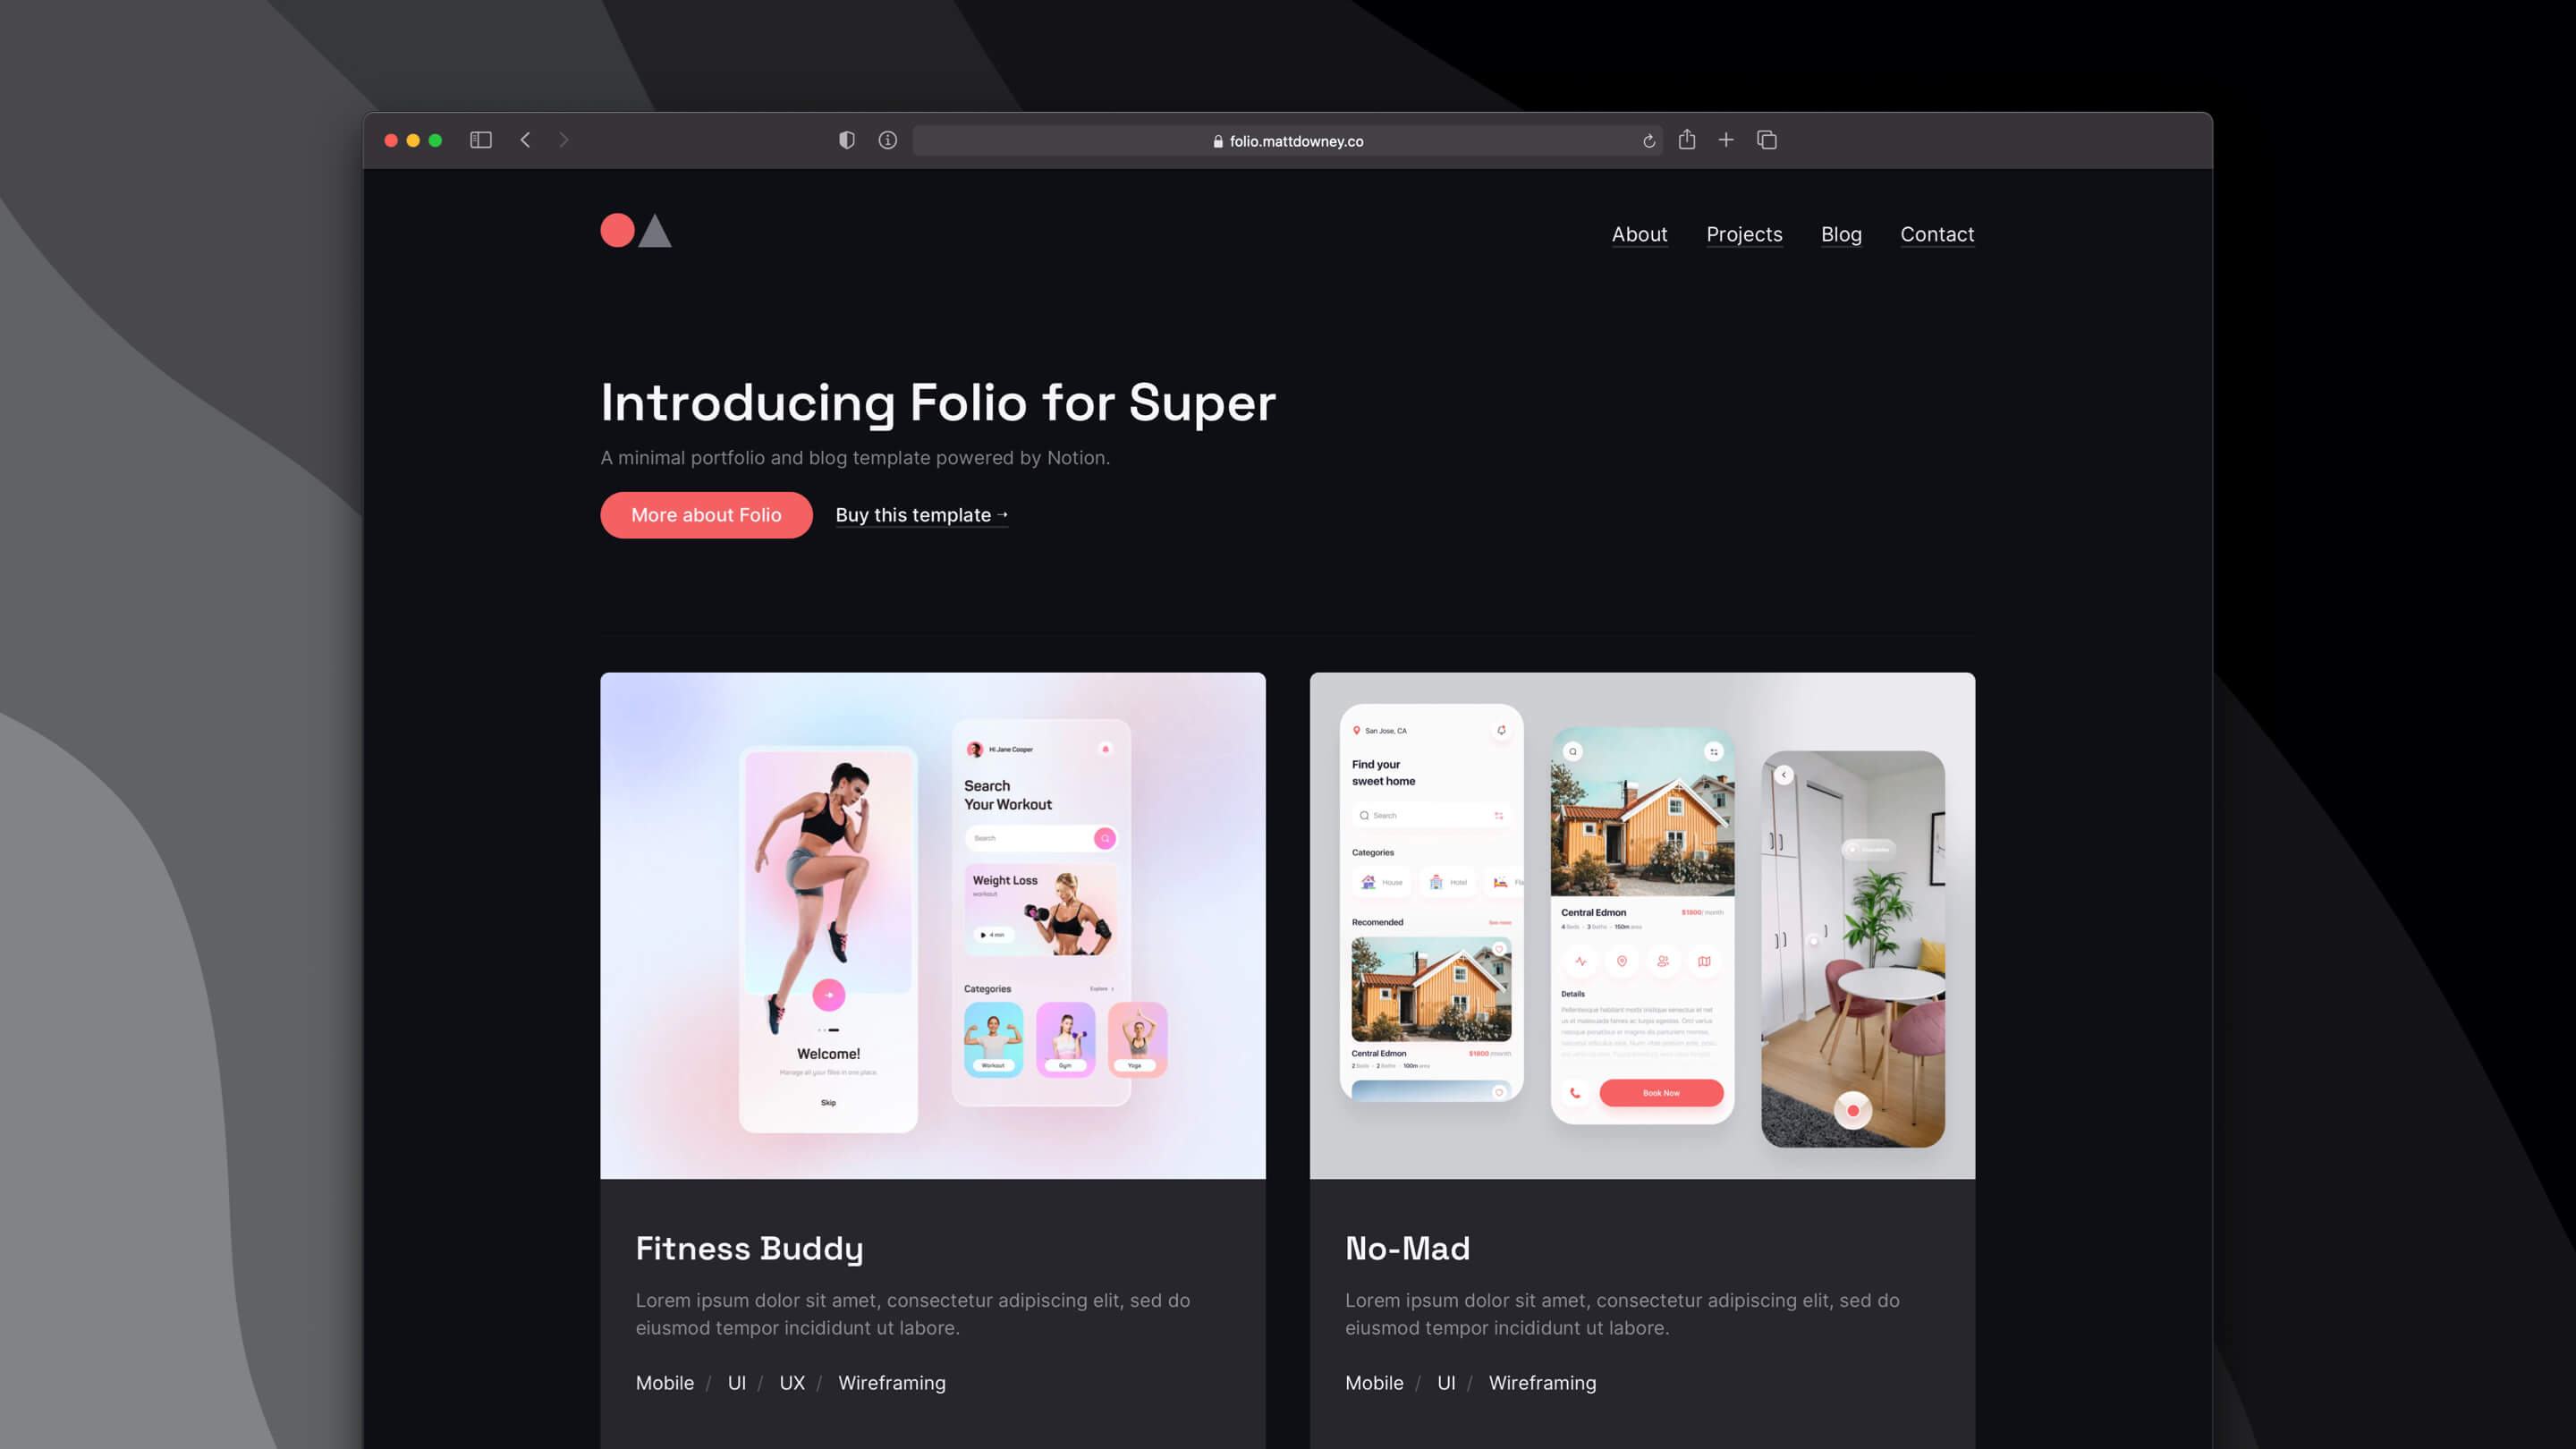 Folio - A Super Template powered by Notion